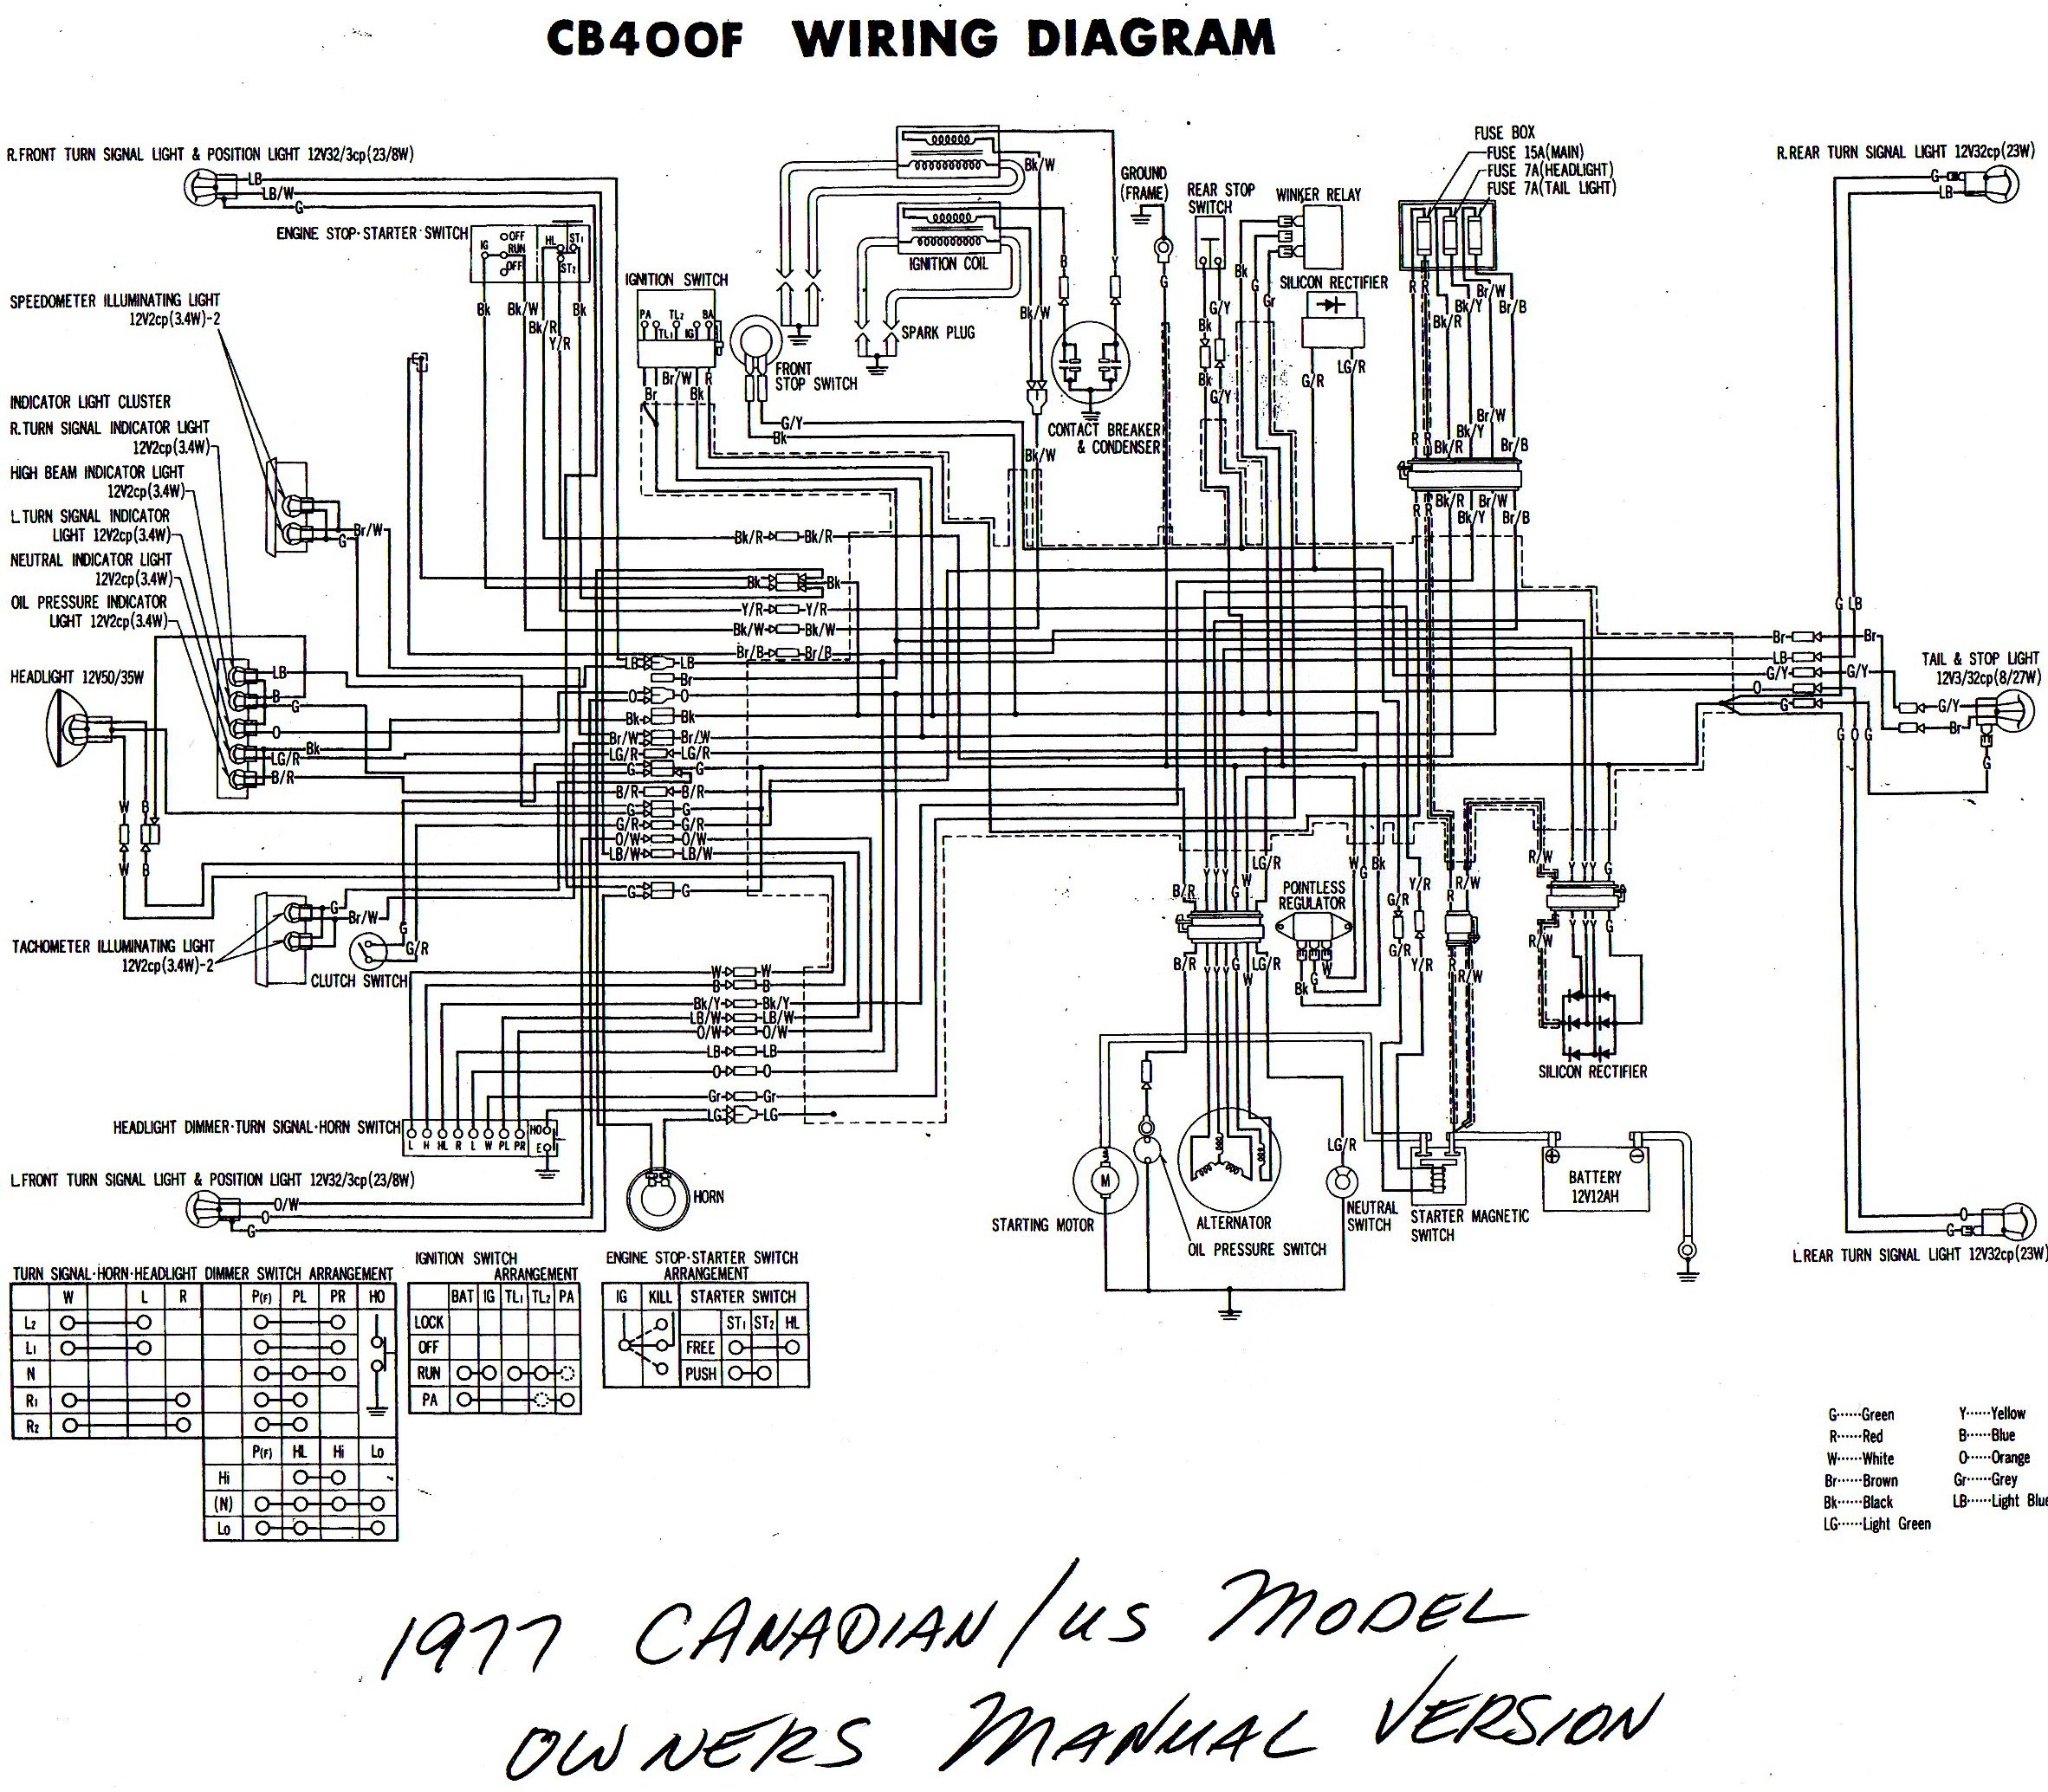 1977 Honda Wiring Diagram Building Chevy Cb400f Chevrolet Us Canada Bw